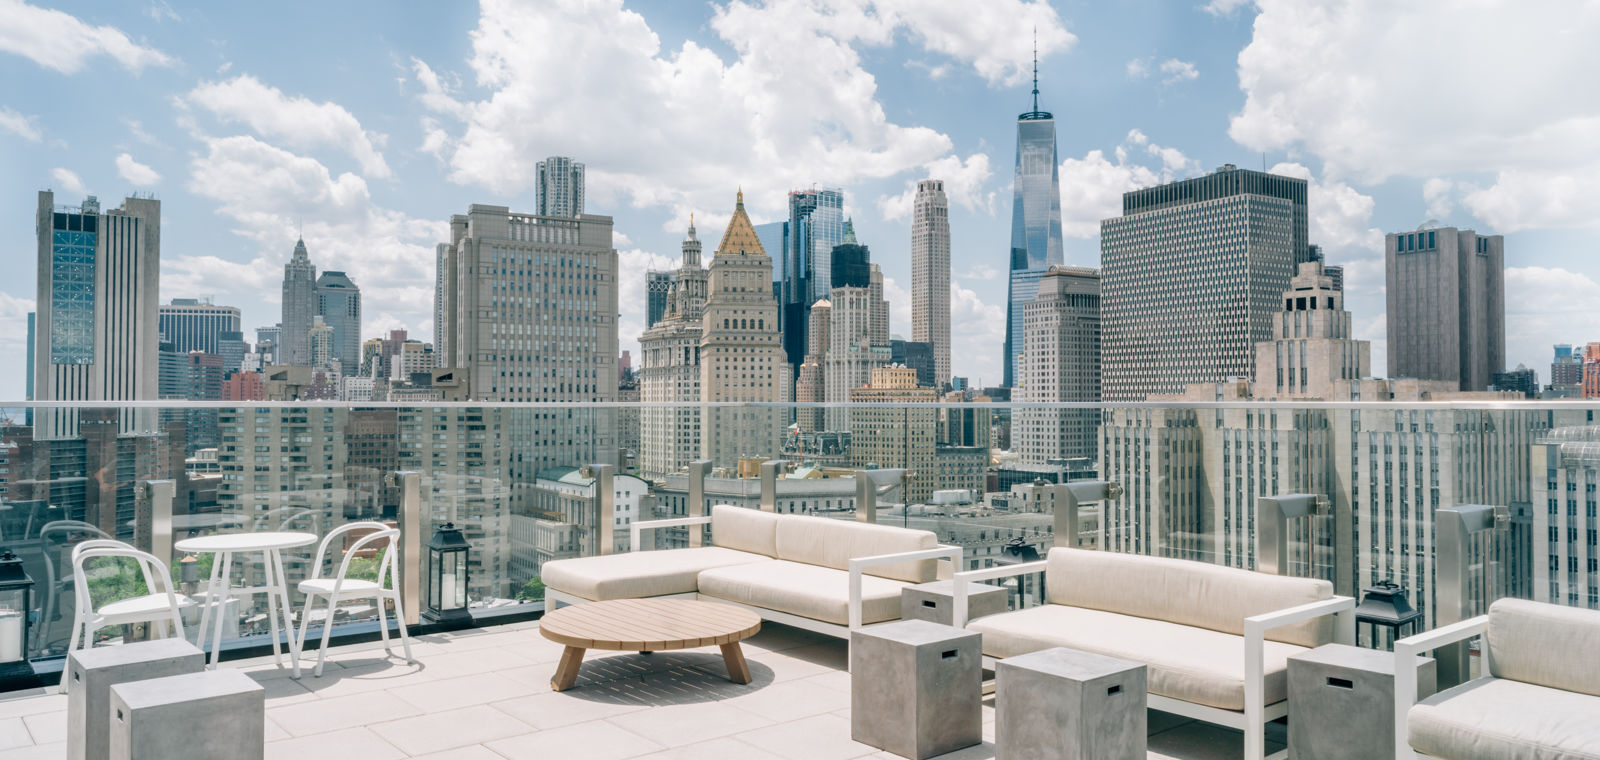 50 Bowery Rooftop Terrace